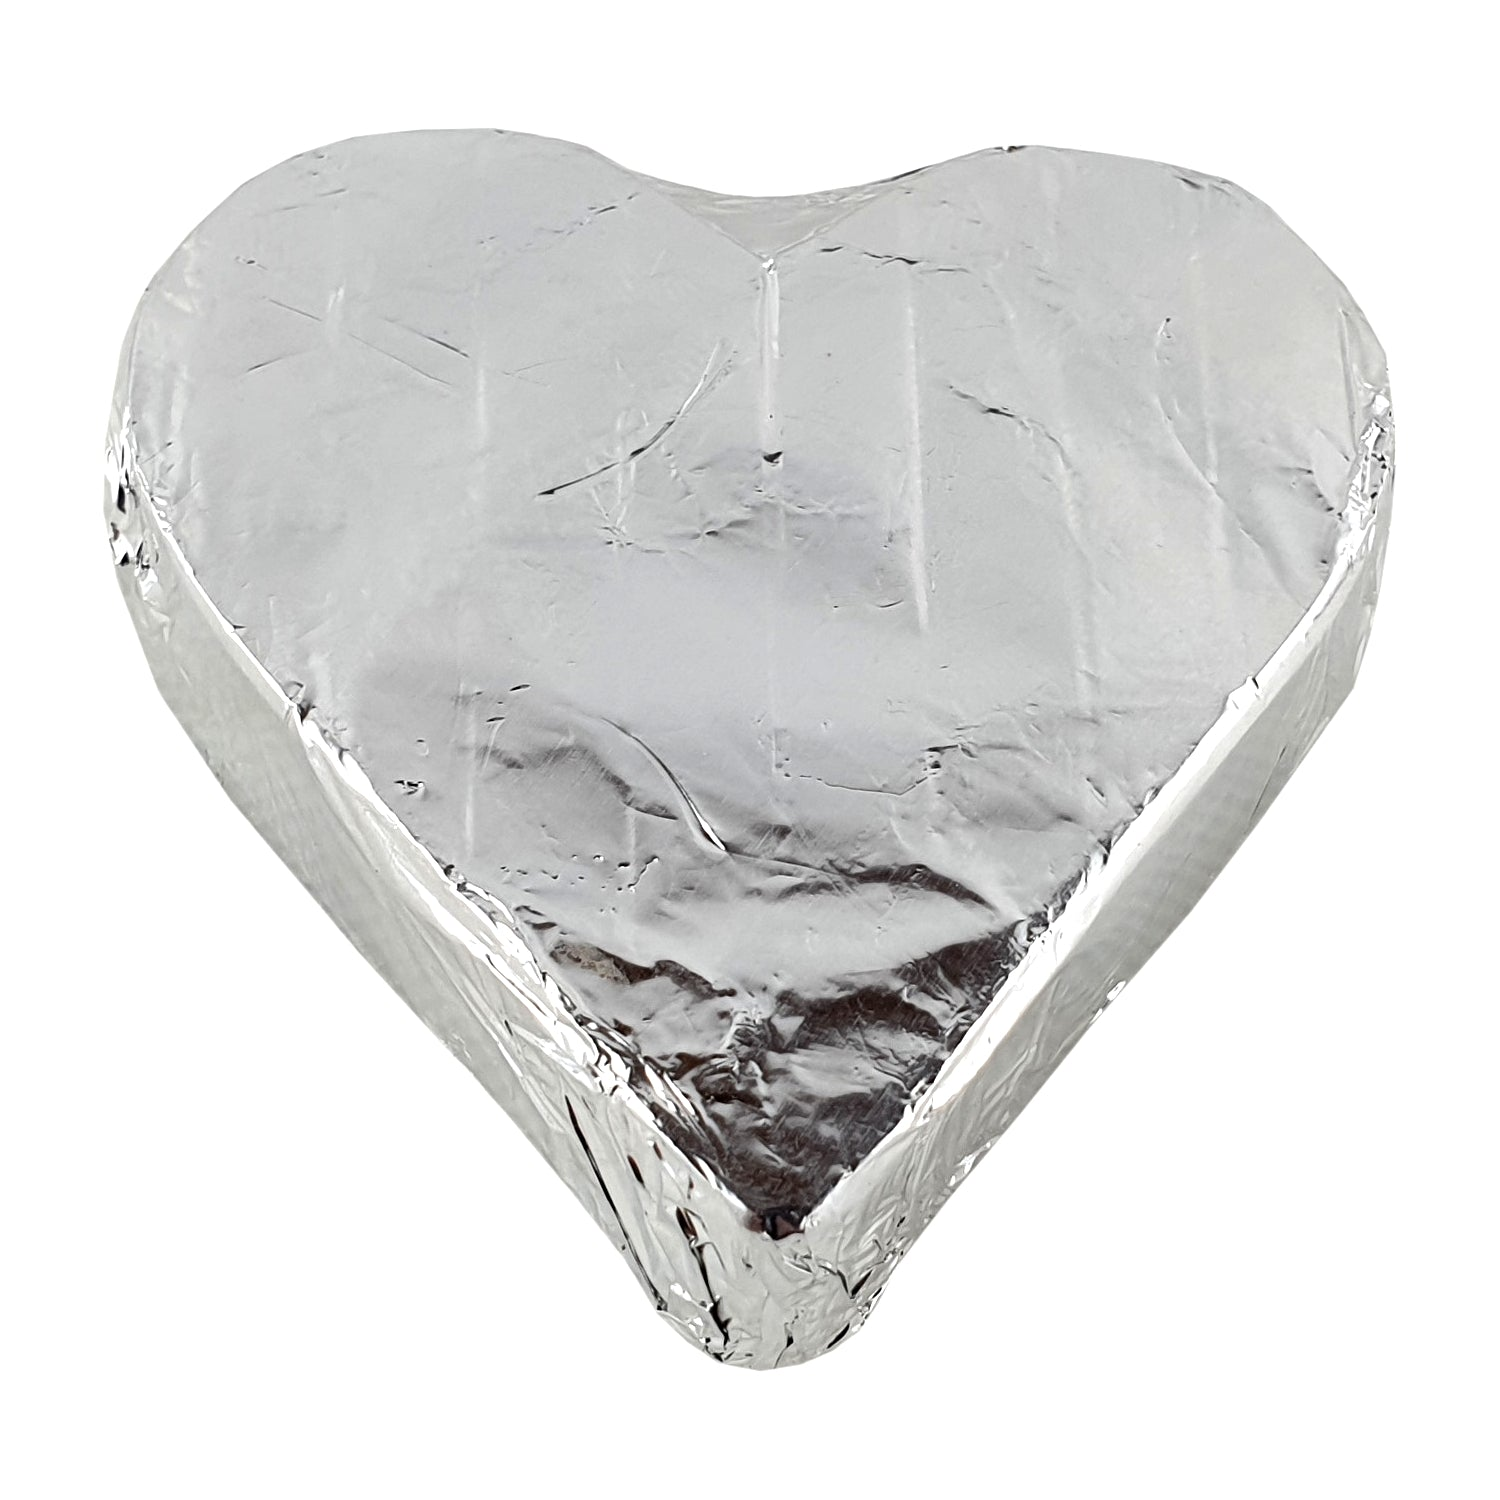 Heart  70% Dark Chocolate Foiled 24g - Vegan